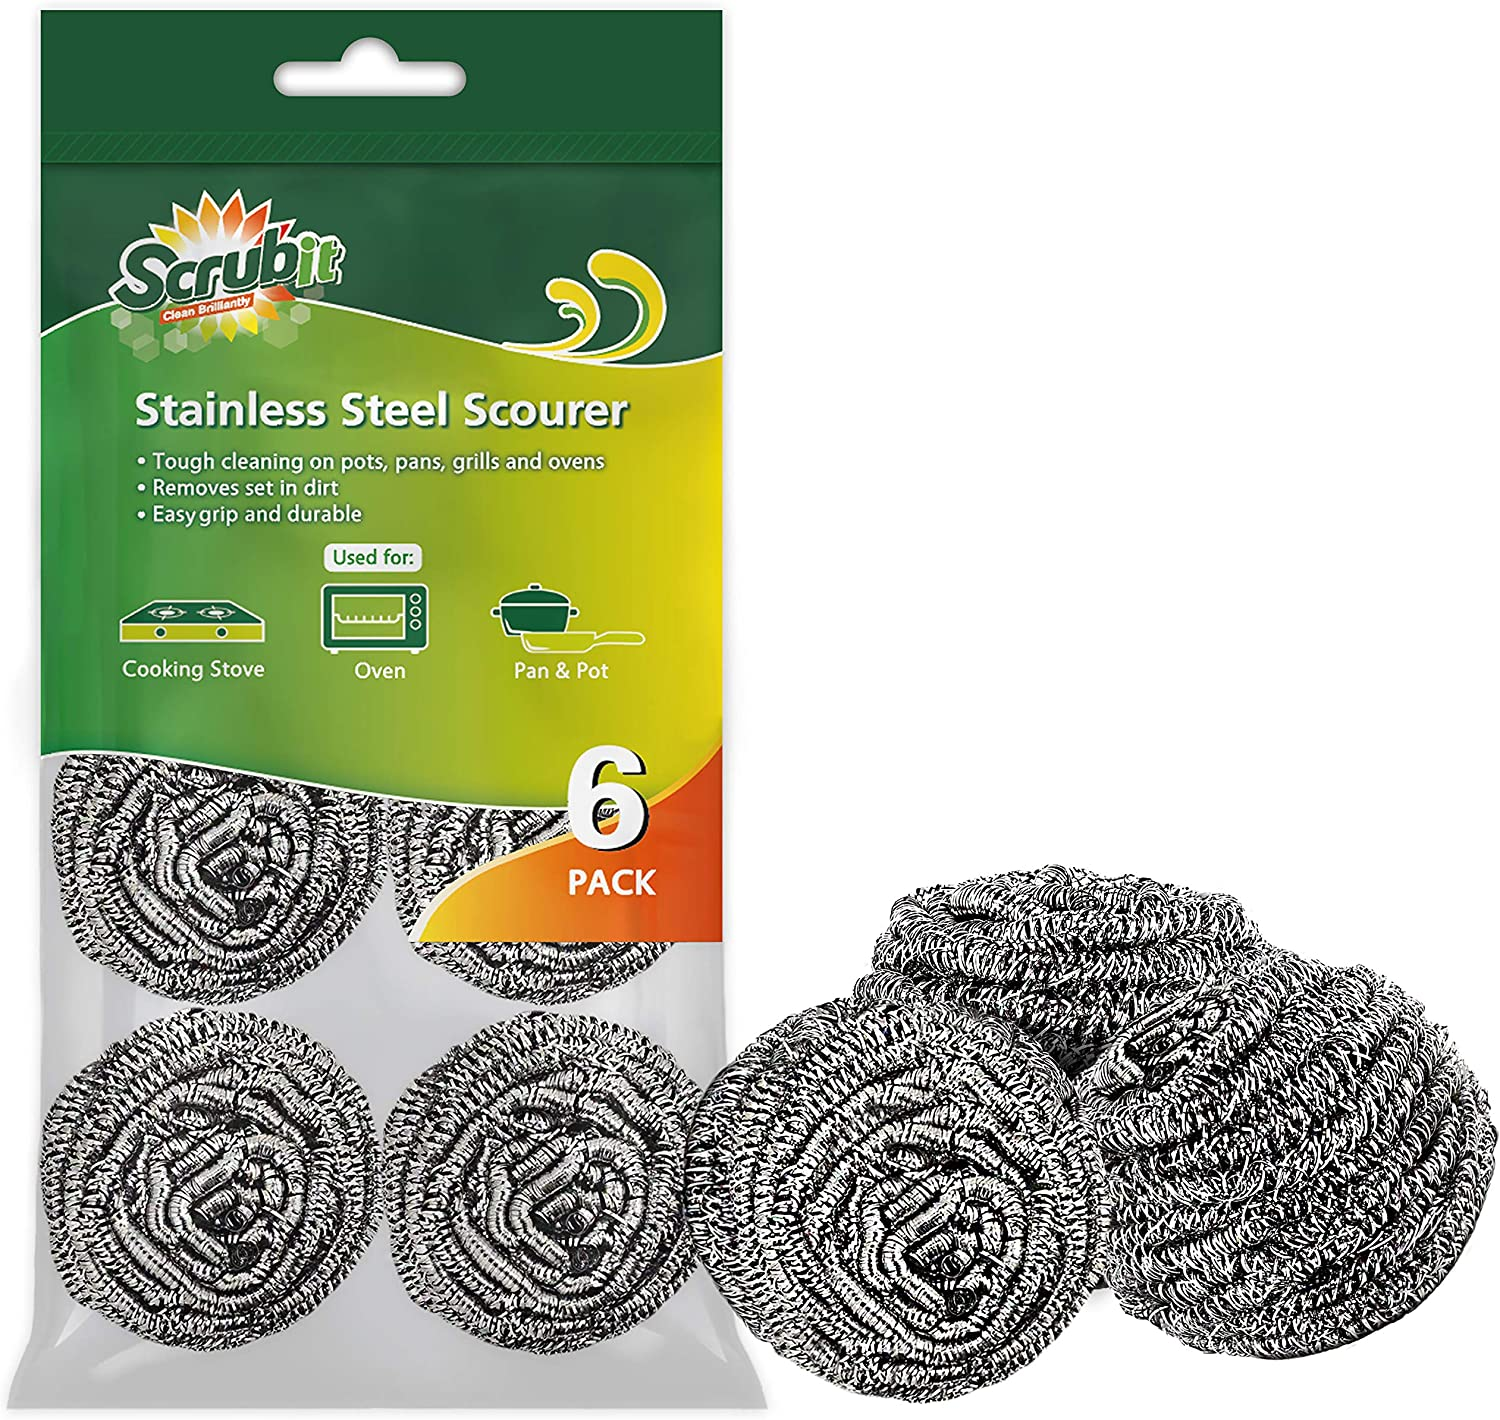 6 Pack Stainless Steel Scourers by Scrub It – Steel Wool Scrubber Pad Used for Dishes, Pots, Pans, and Ovens. Easy scouring for Tough Kitchen Cleaning.